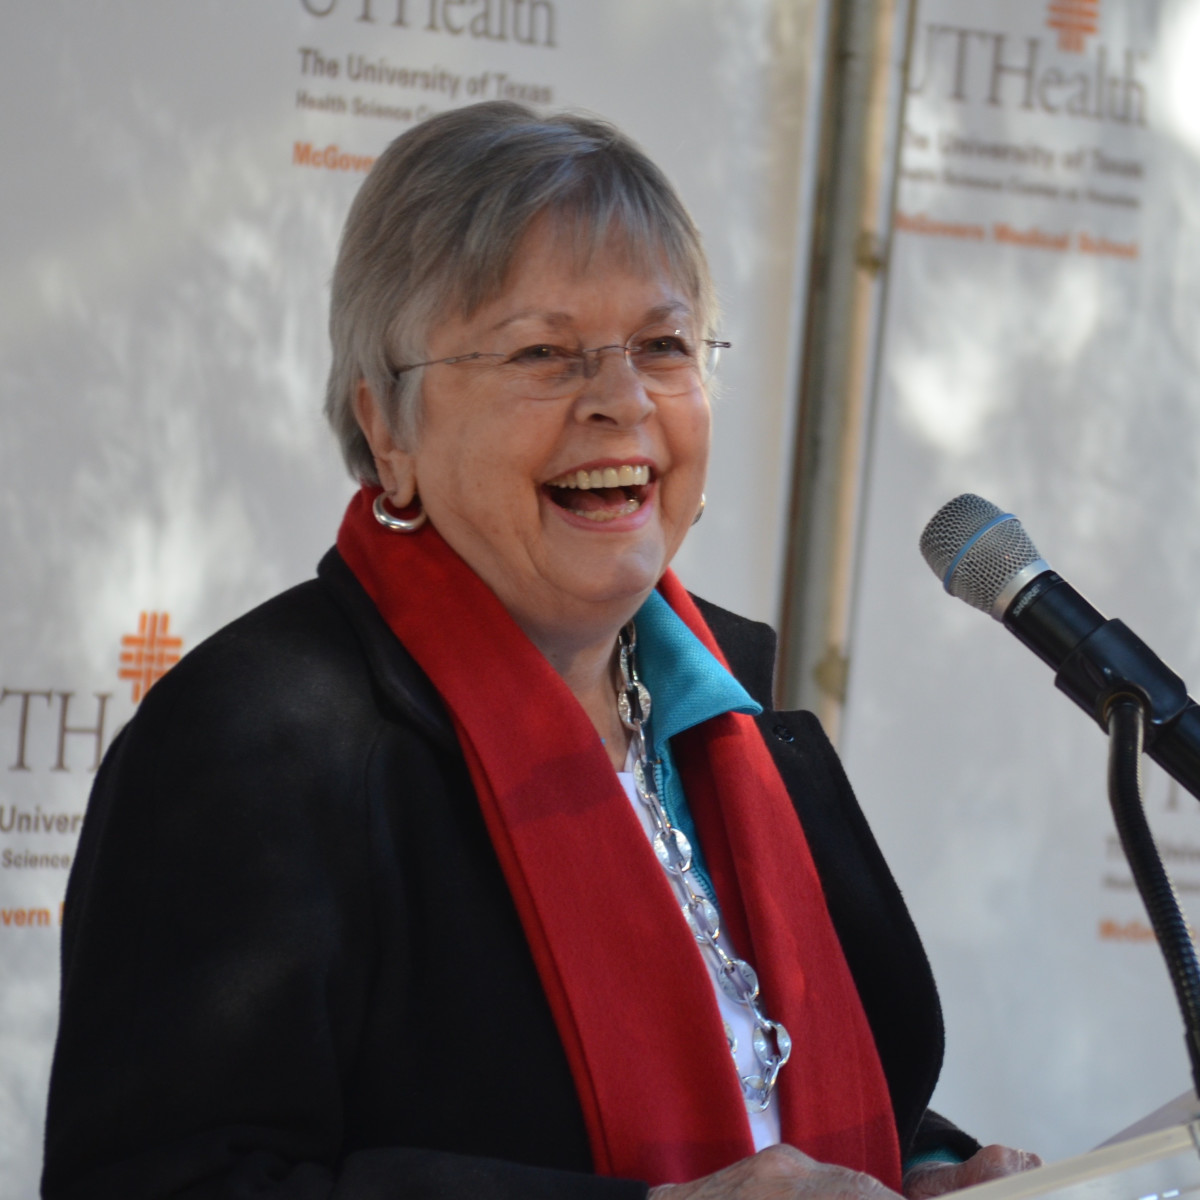 News, Shelby, McGovern Medical School unveiling, Nov. 2015,  Kathrine McGovern